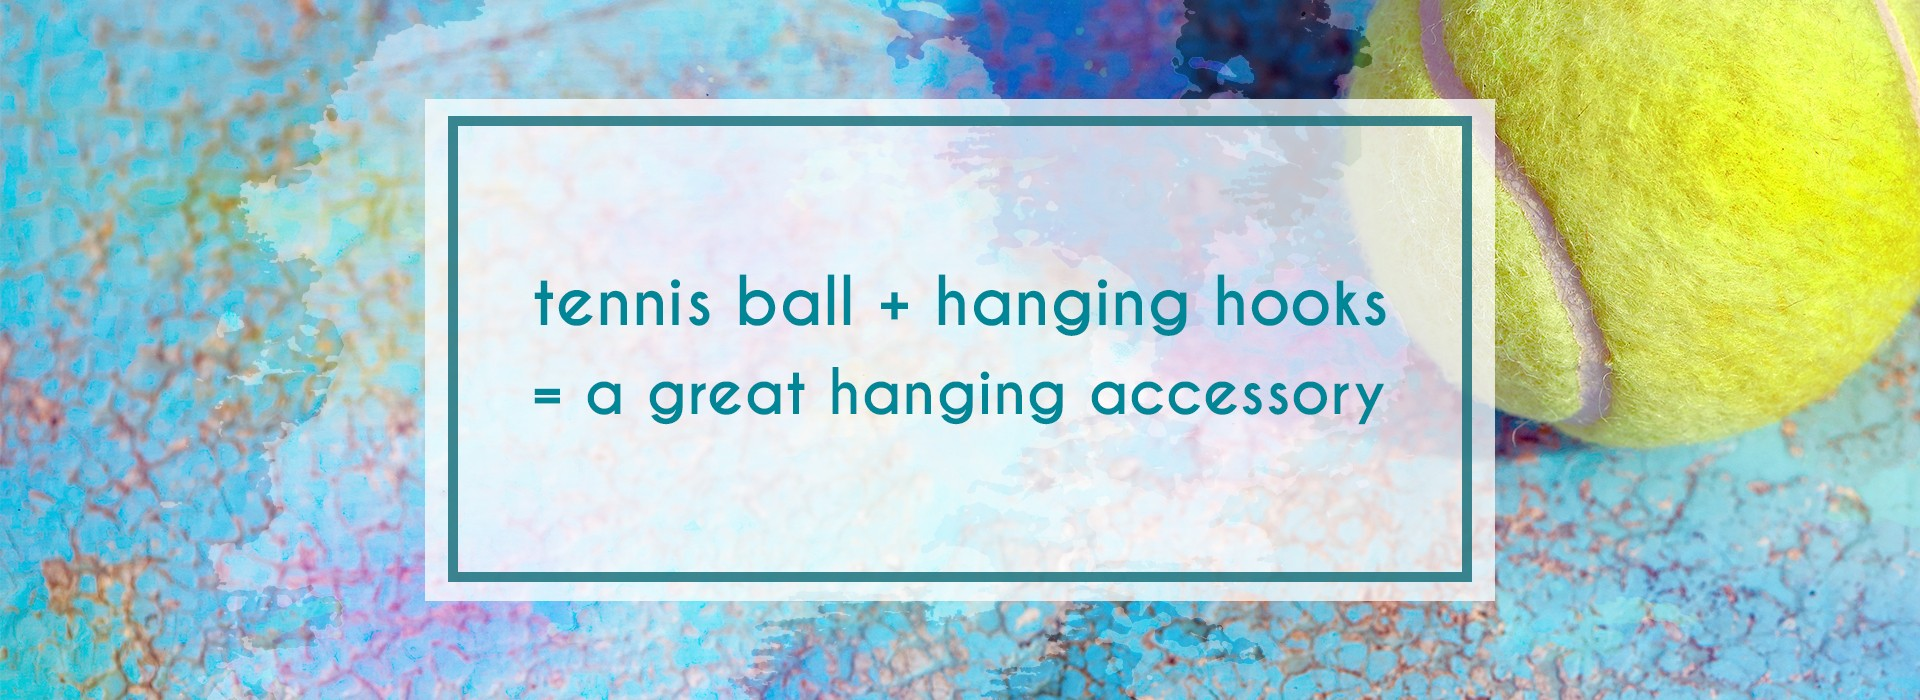 Hang little odds and ends in a different way by using a tennis ball